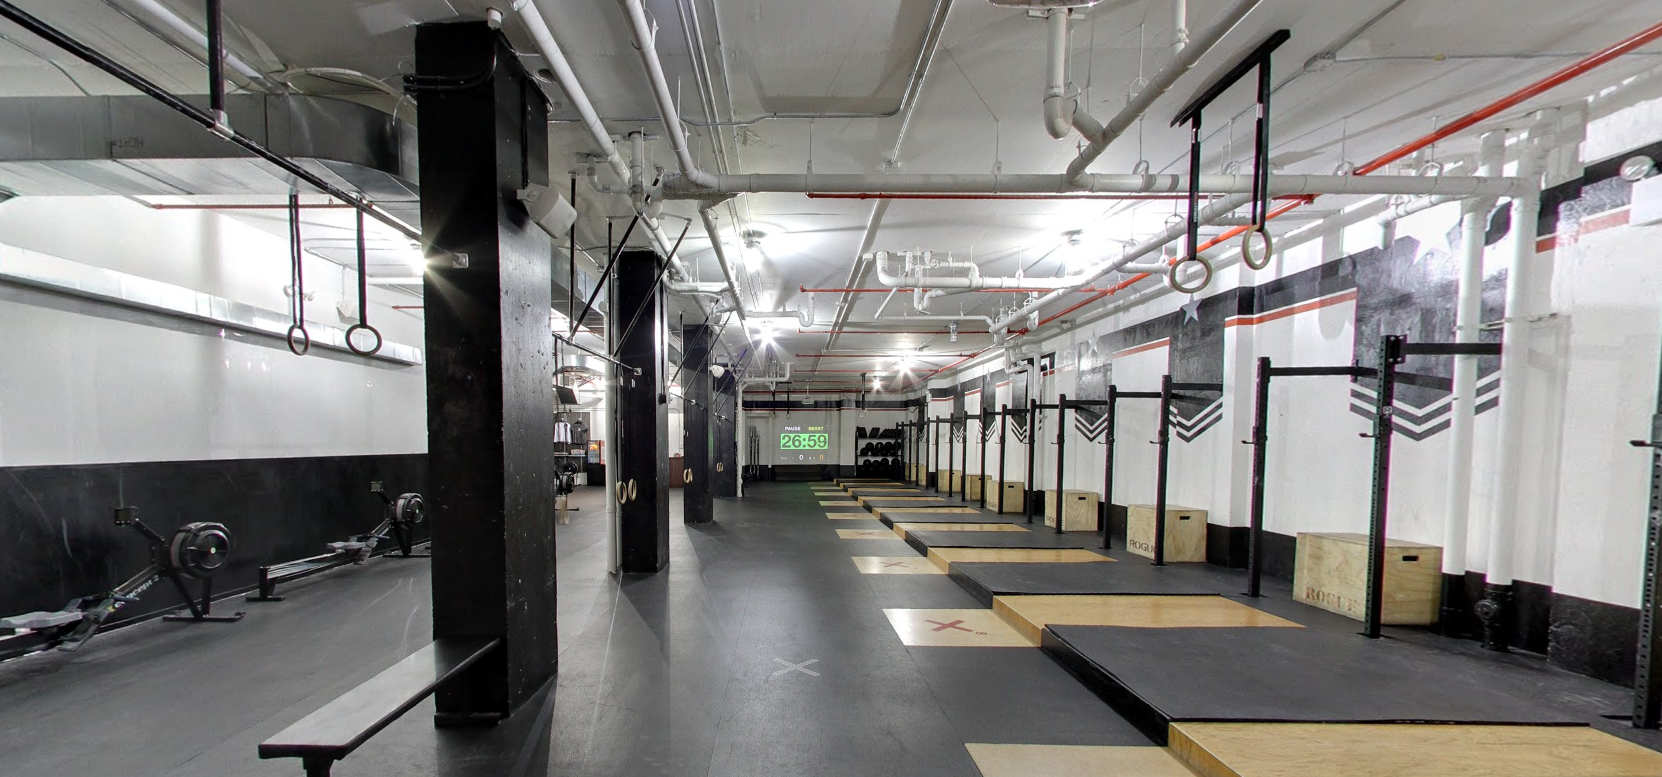 Different fitness equipment laid out across the studio of Crossfit's Tribeca location in New York. MEP for the space was designed by 2L Engineering.